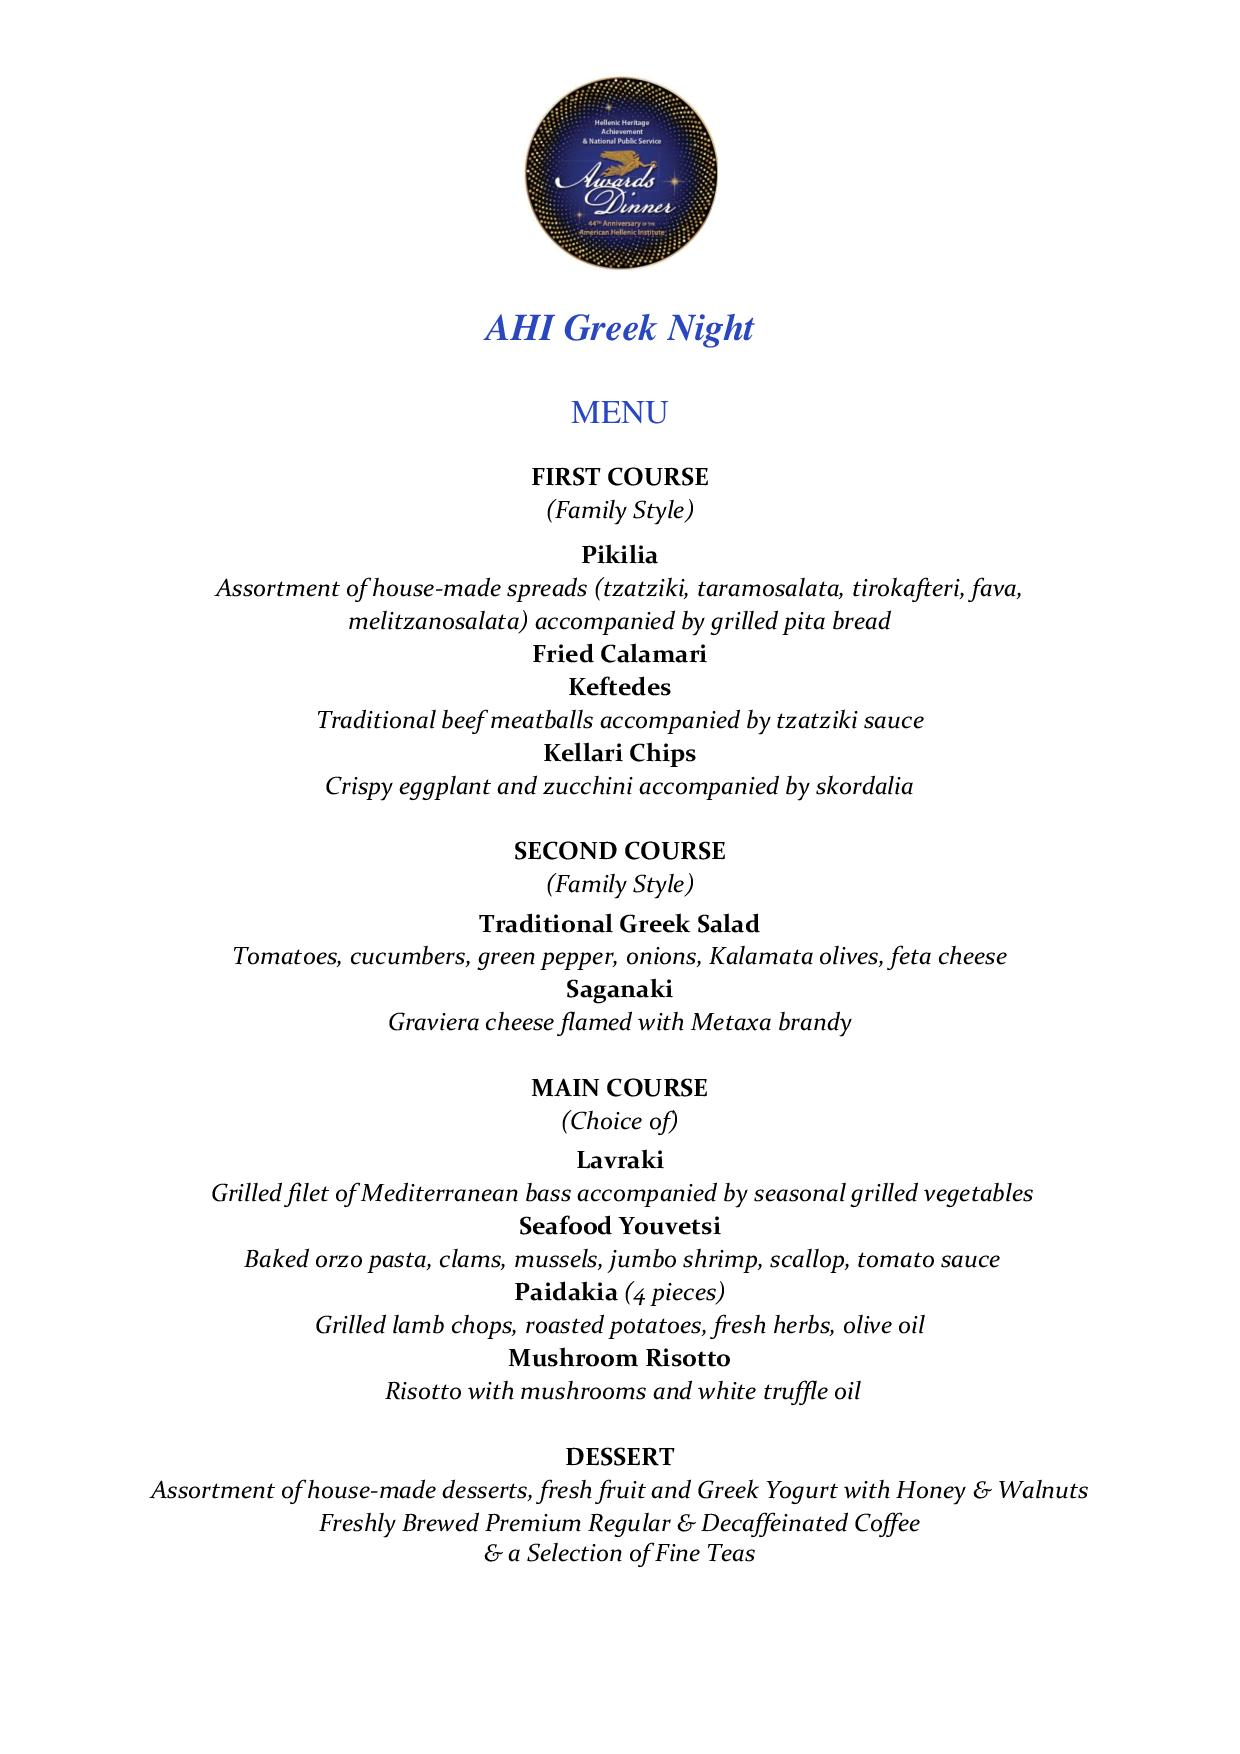 AHI Greek Night Menu jpg.jpg